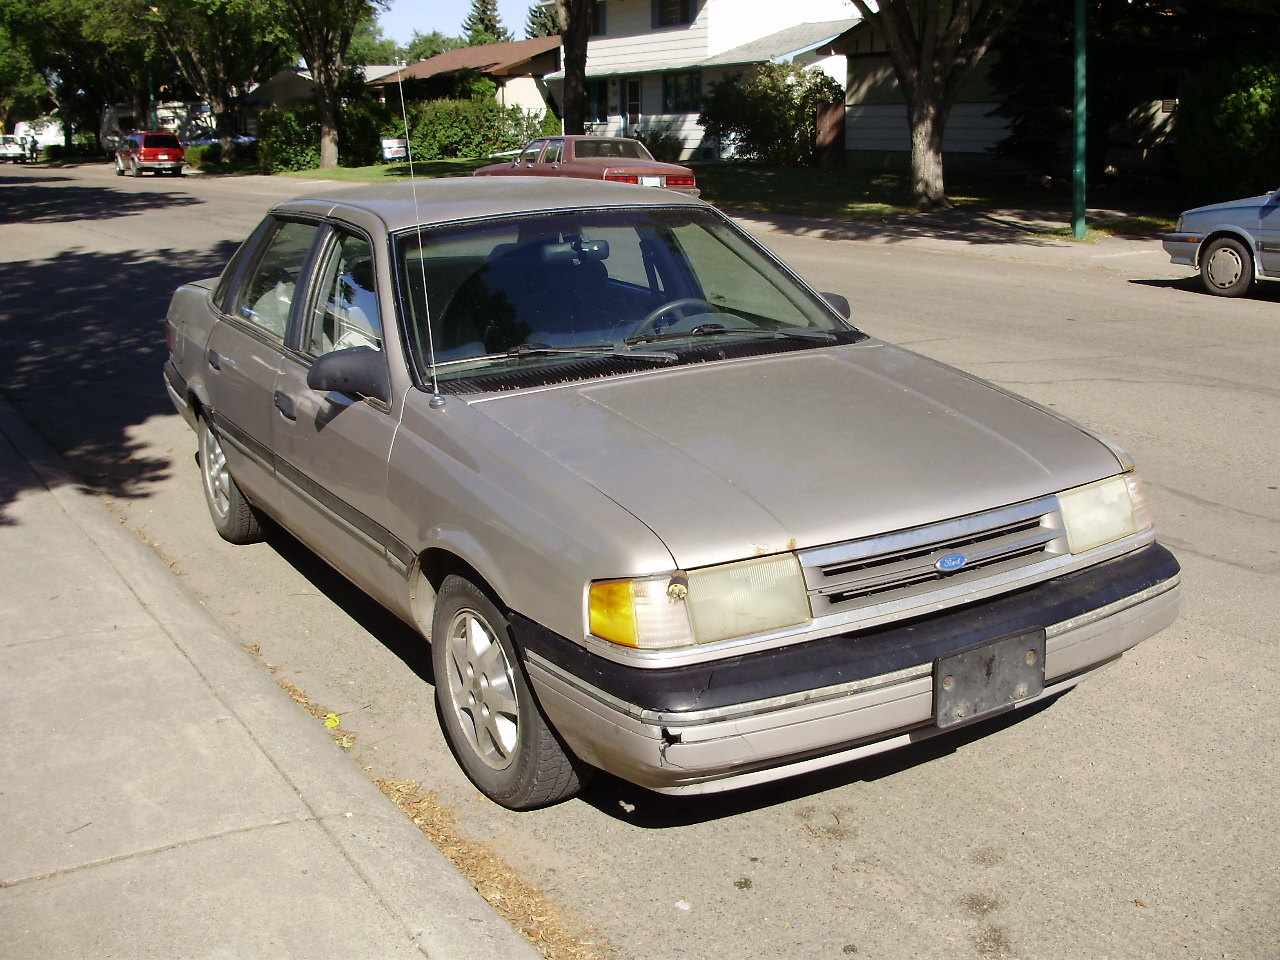 1990 Ford Tempo - Overview